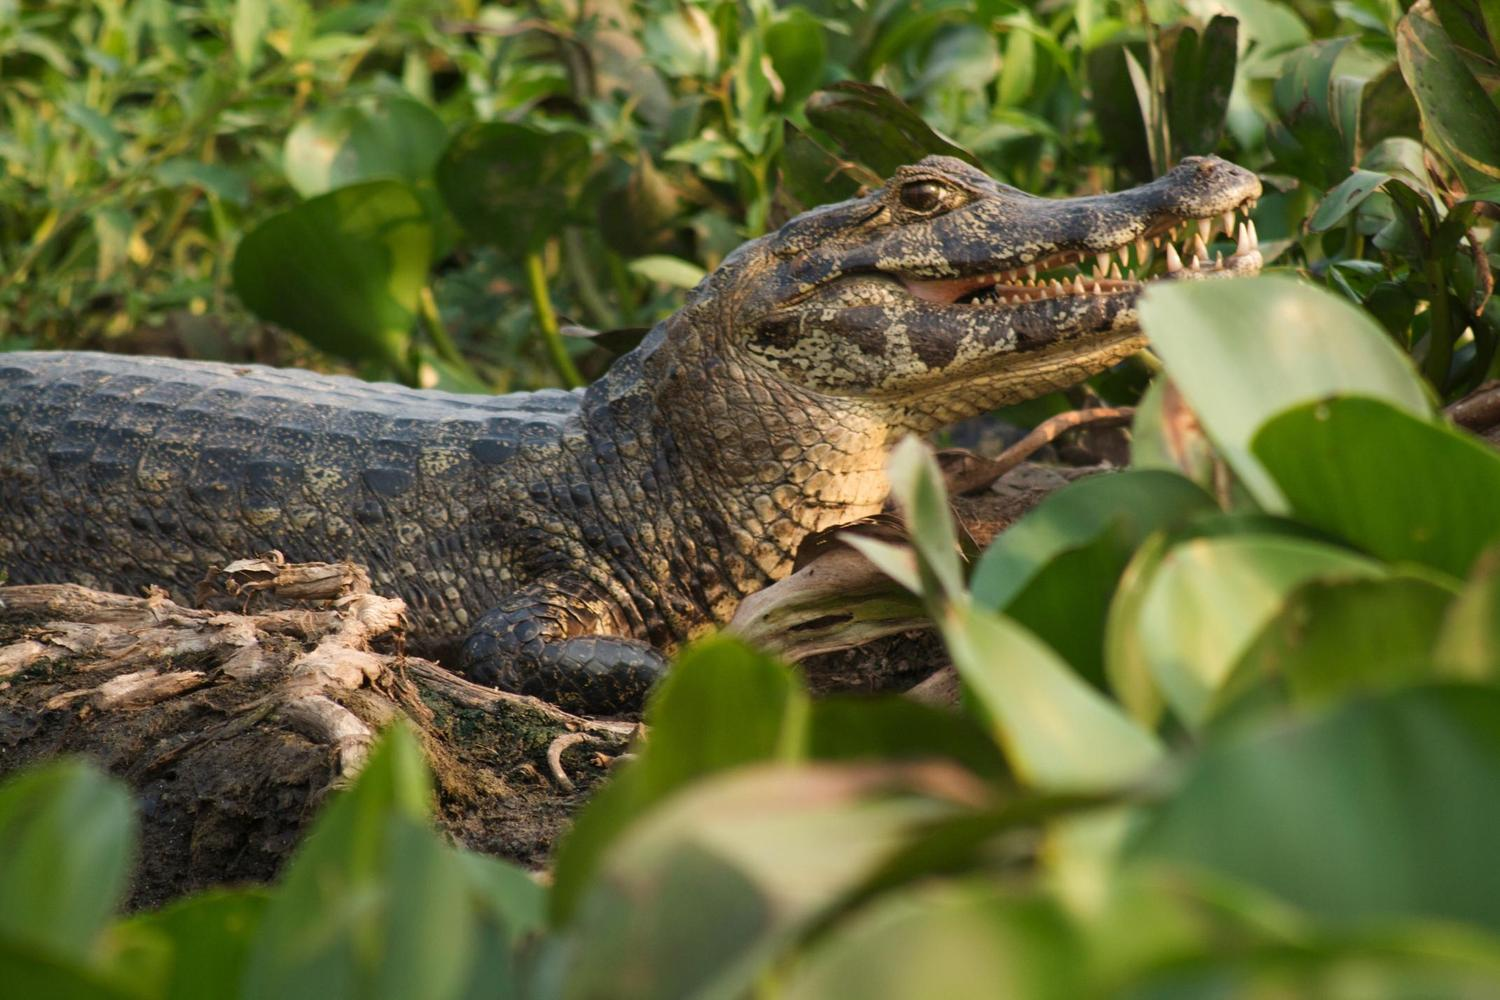 Caiman in the Pantanal, Brazil's best wildlife destination